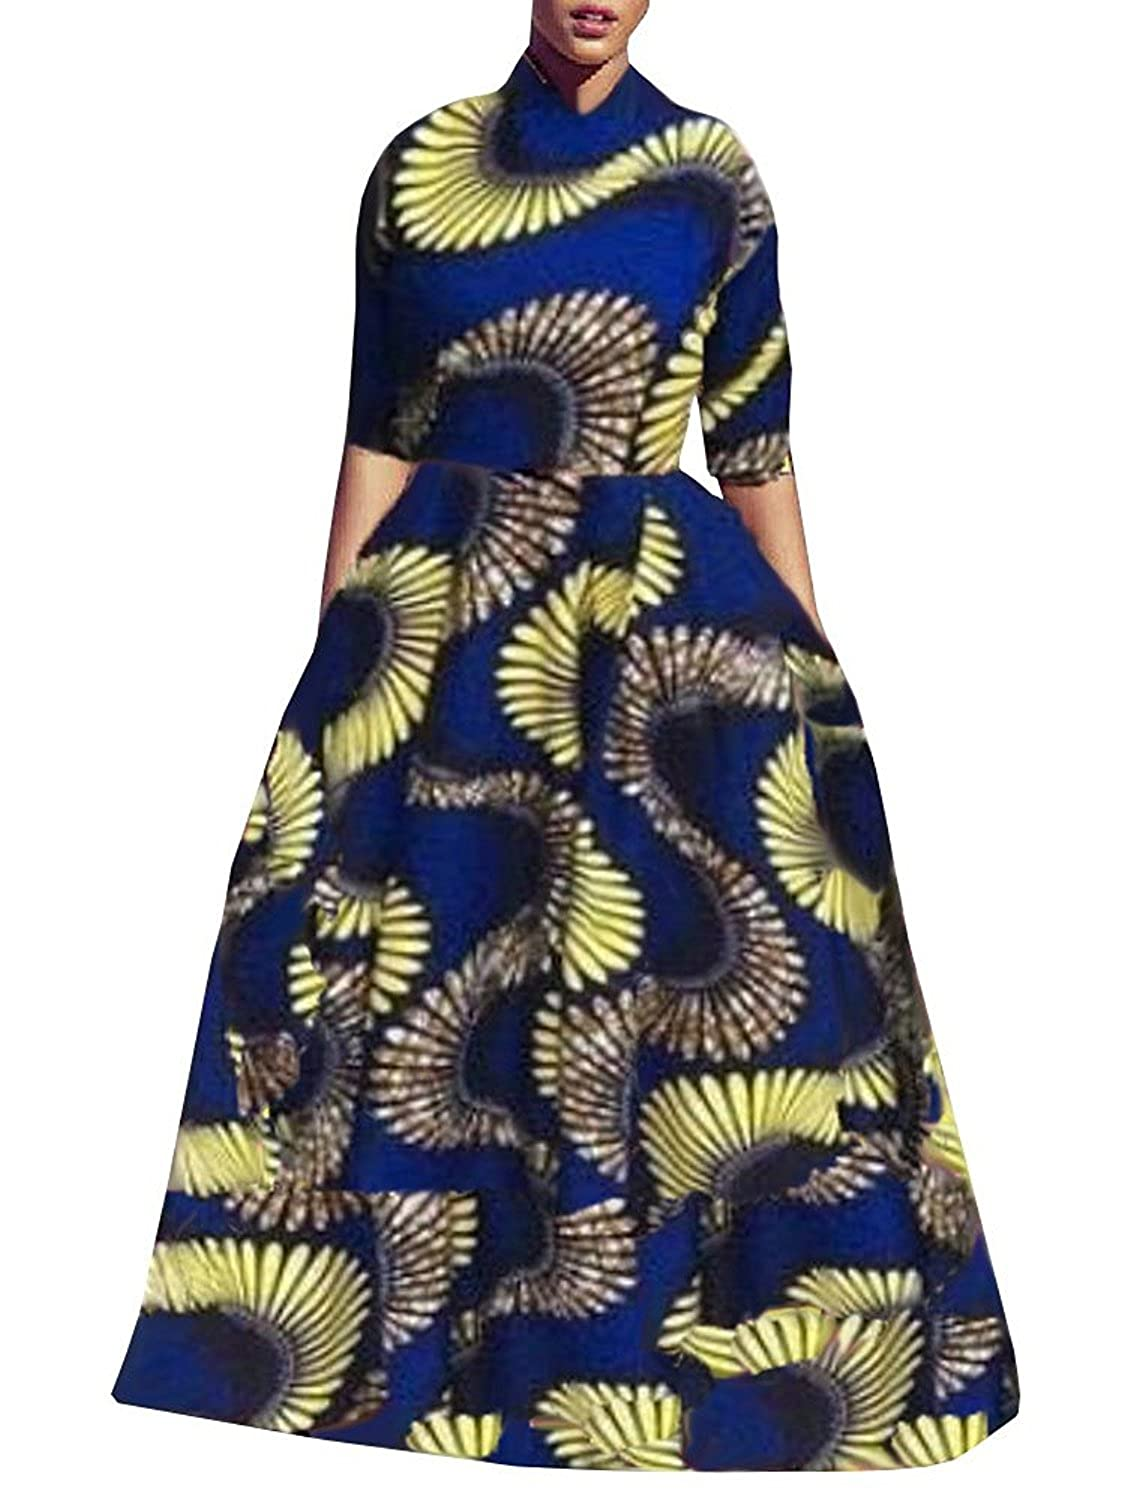 53e975cffaaa Top 10 wholesale African Print Skirt And Crop Top - Chinabrands.com